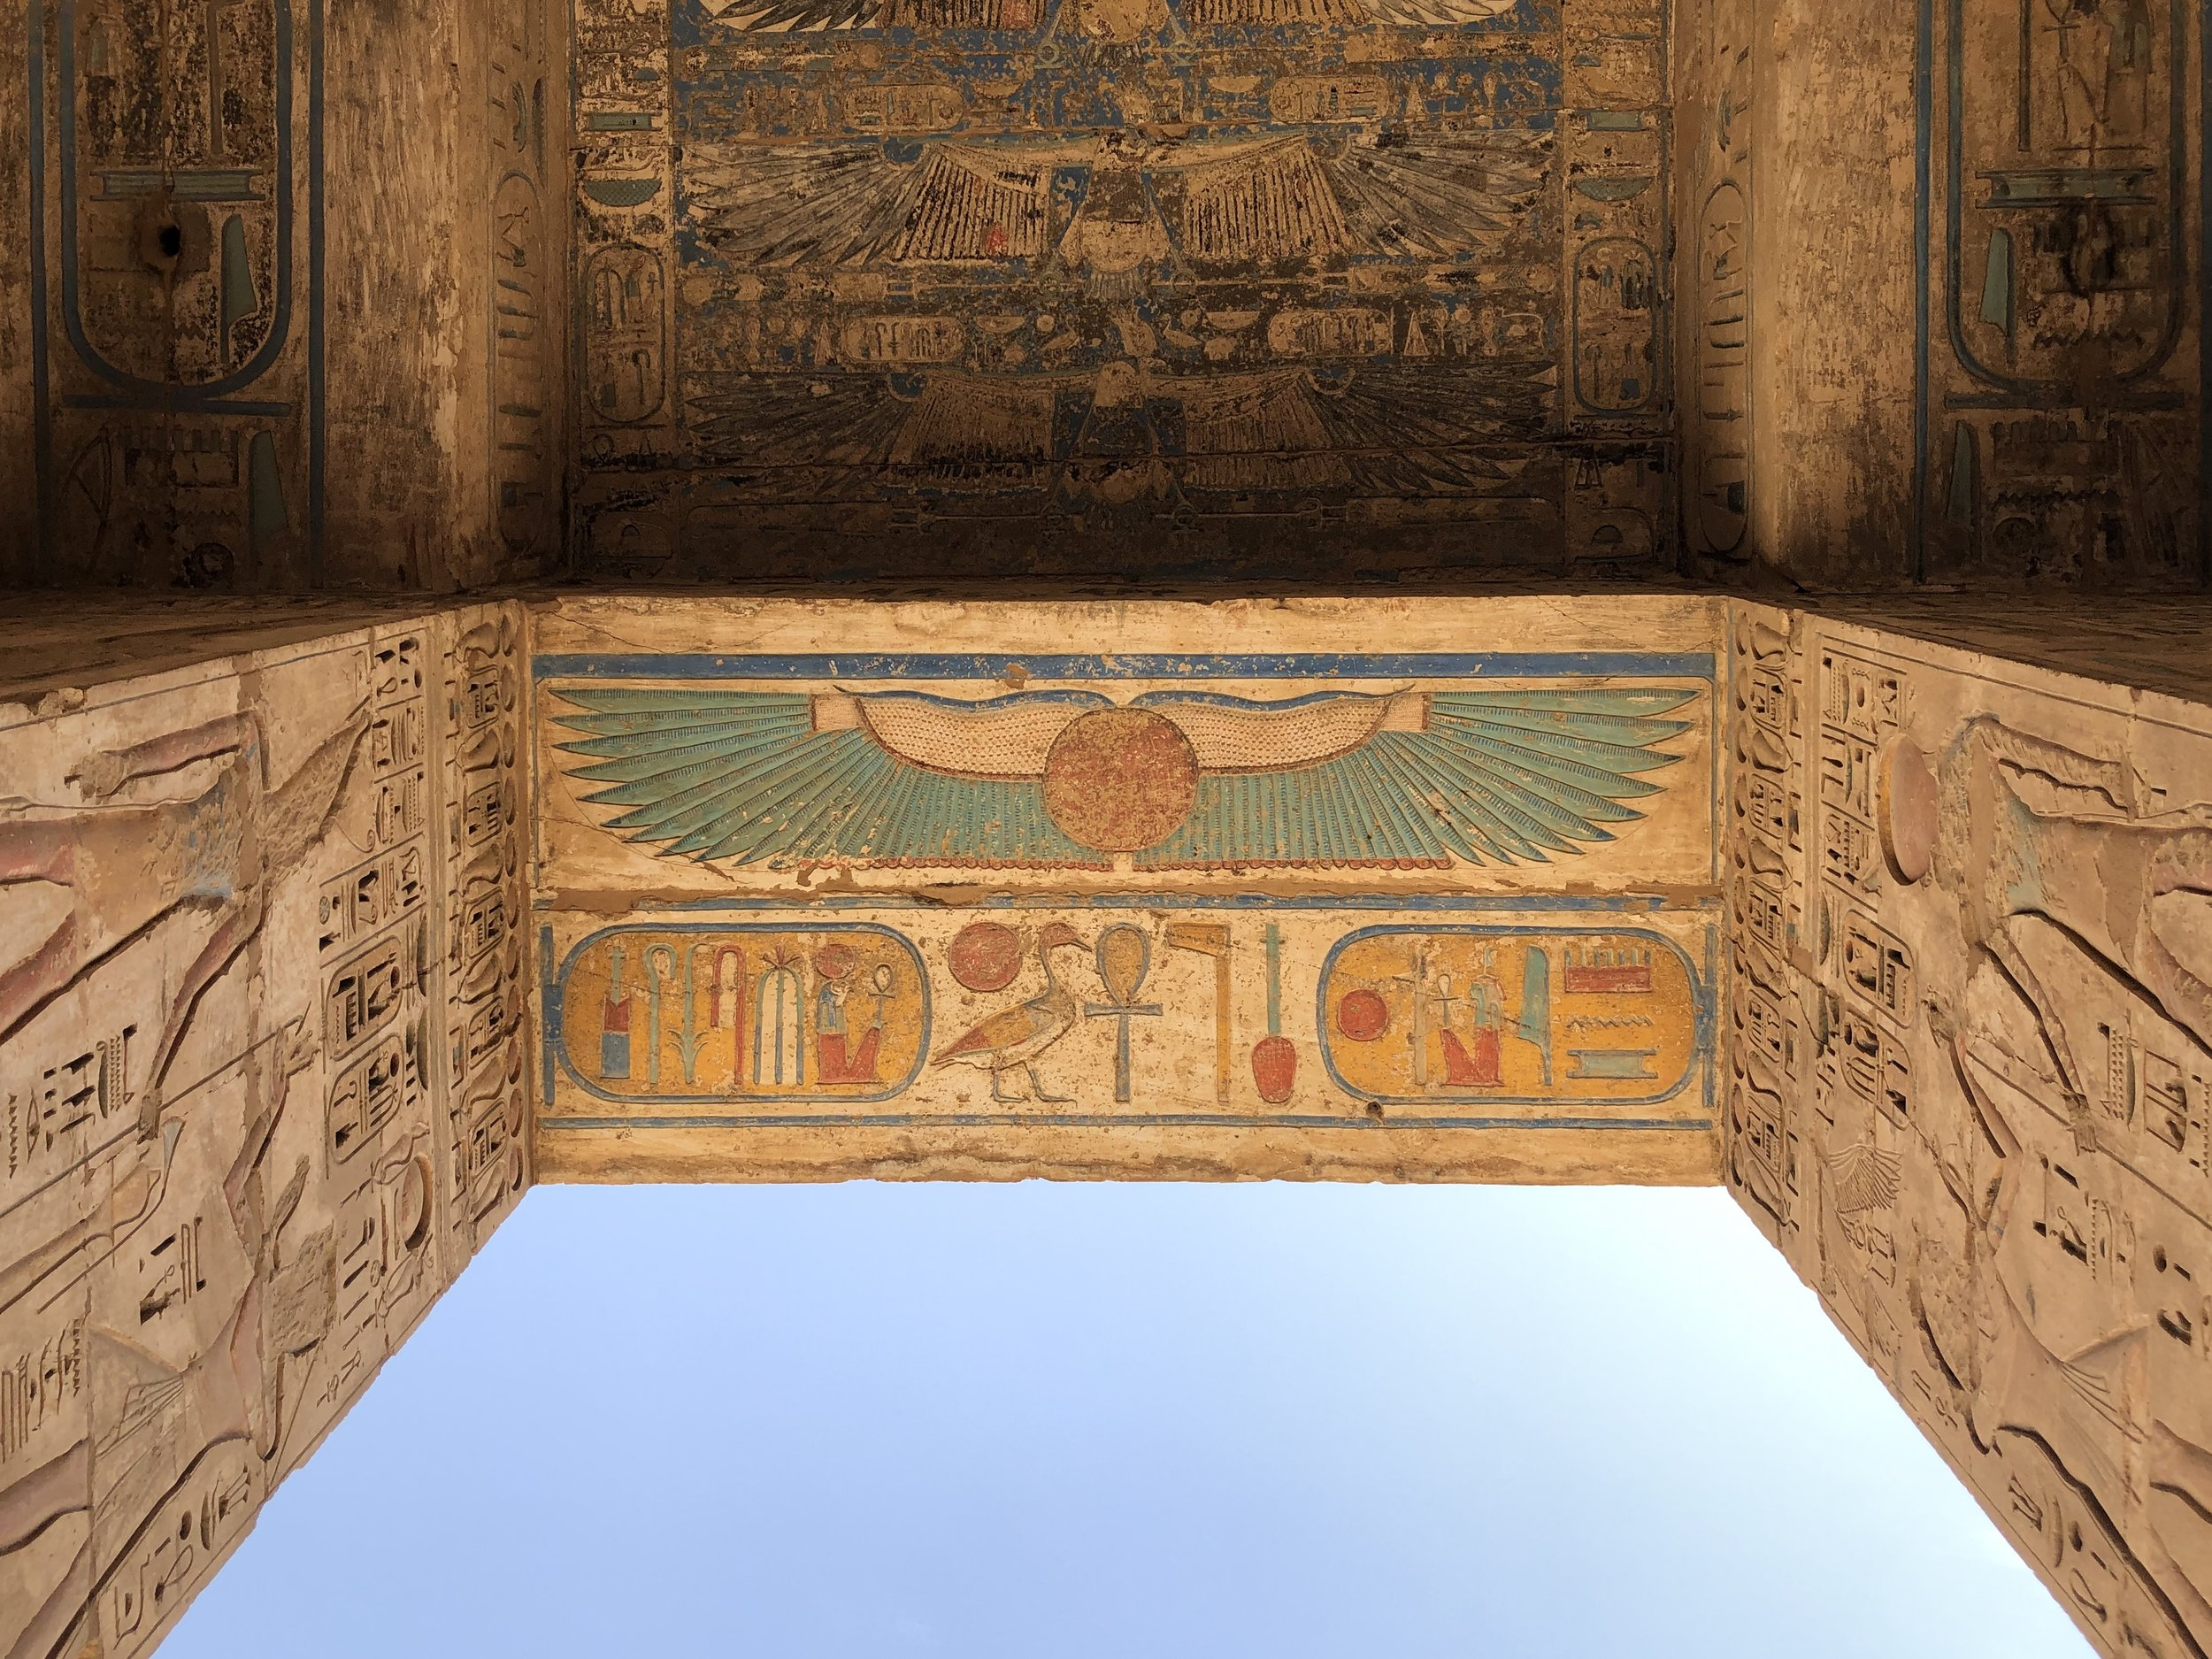 The underside of this gateway shows the winged sun amongst other paintings